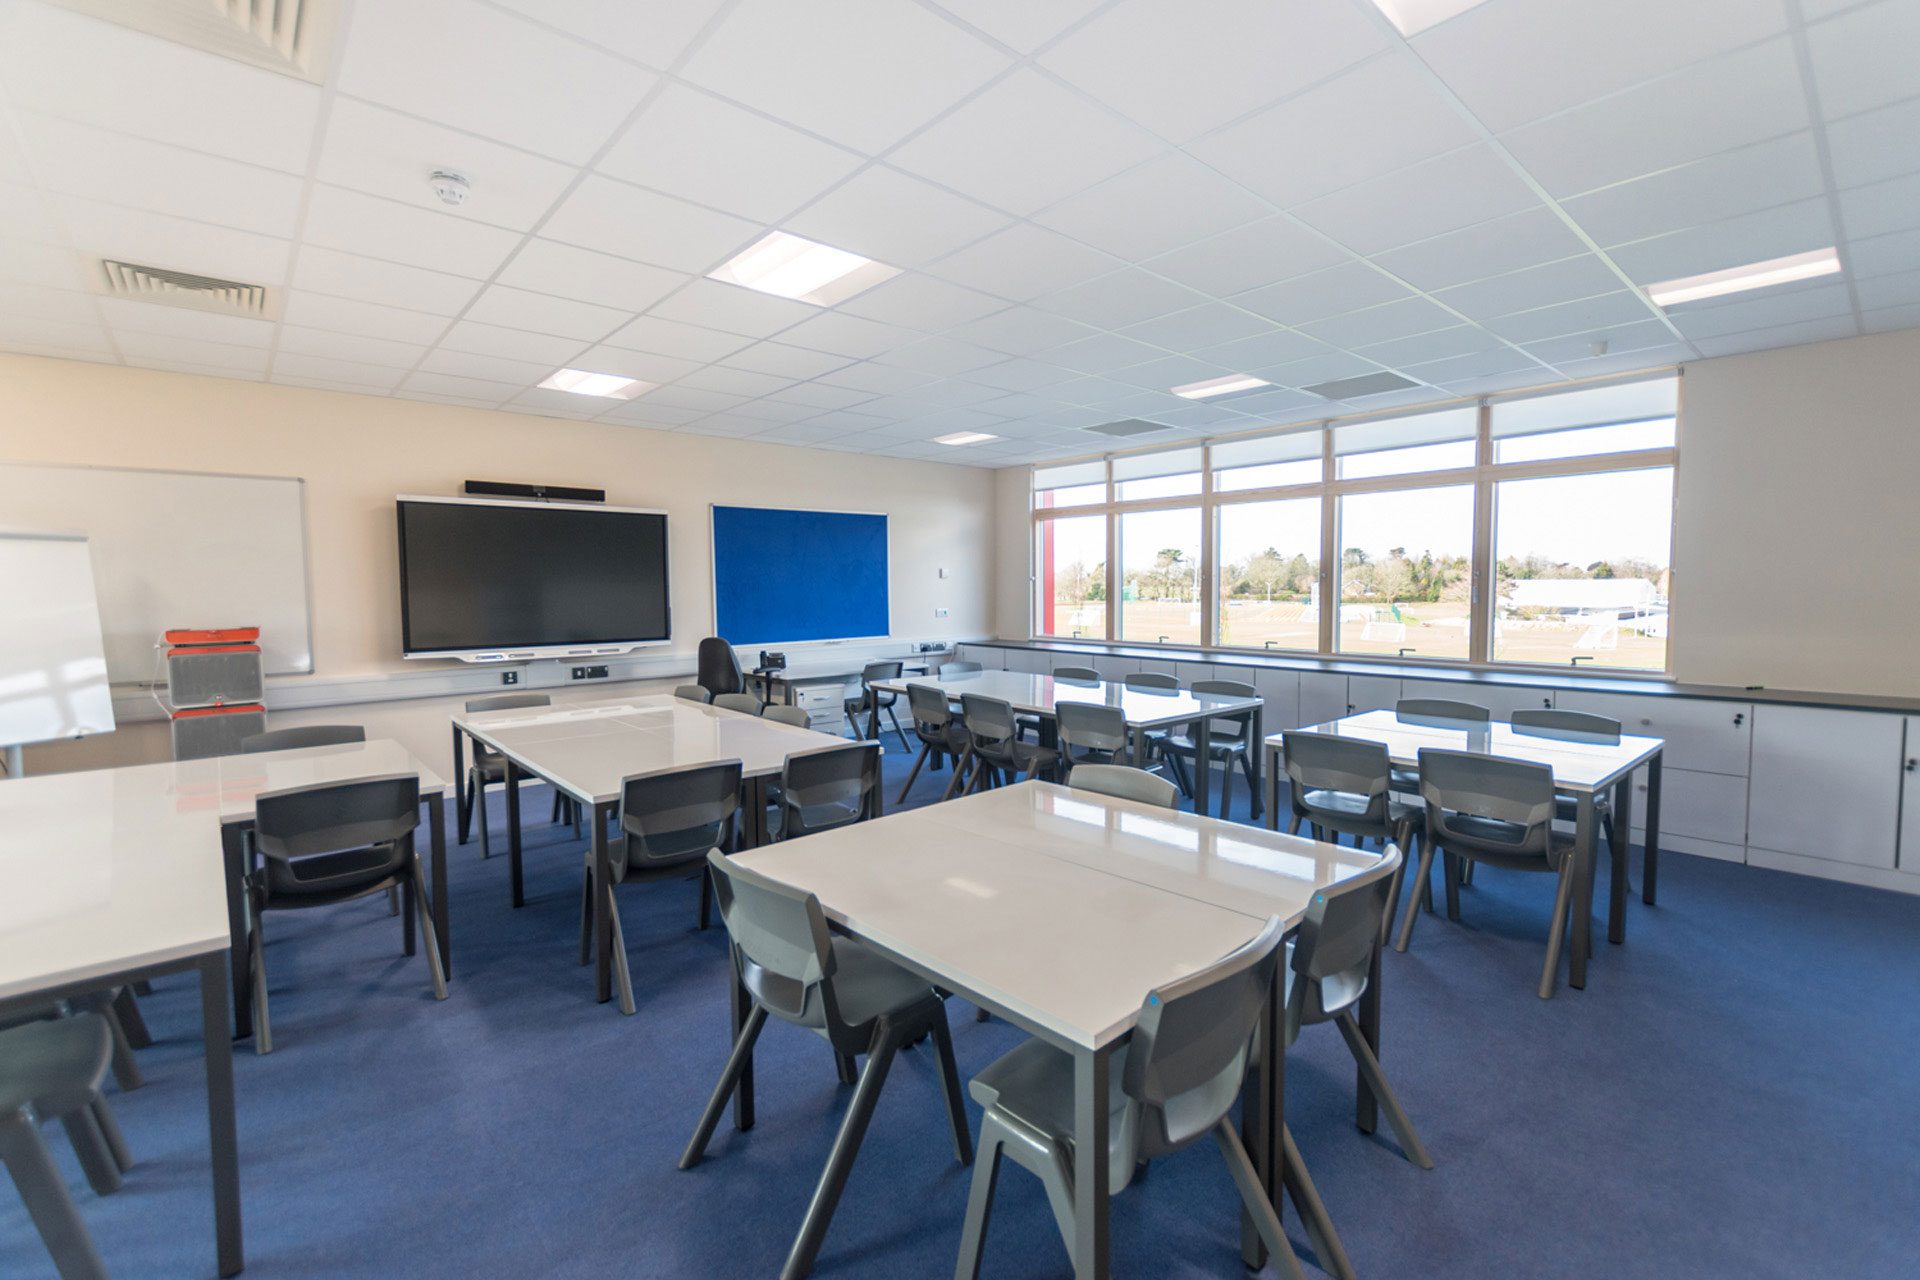 Woodcote Primary school - Modular building - expansion project - Internal classroom view